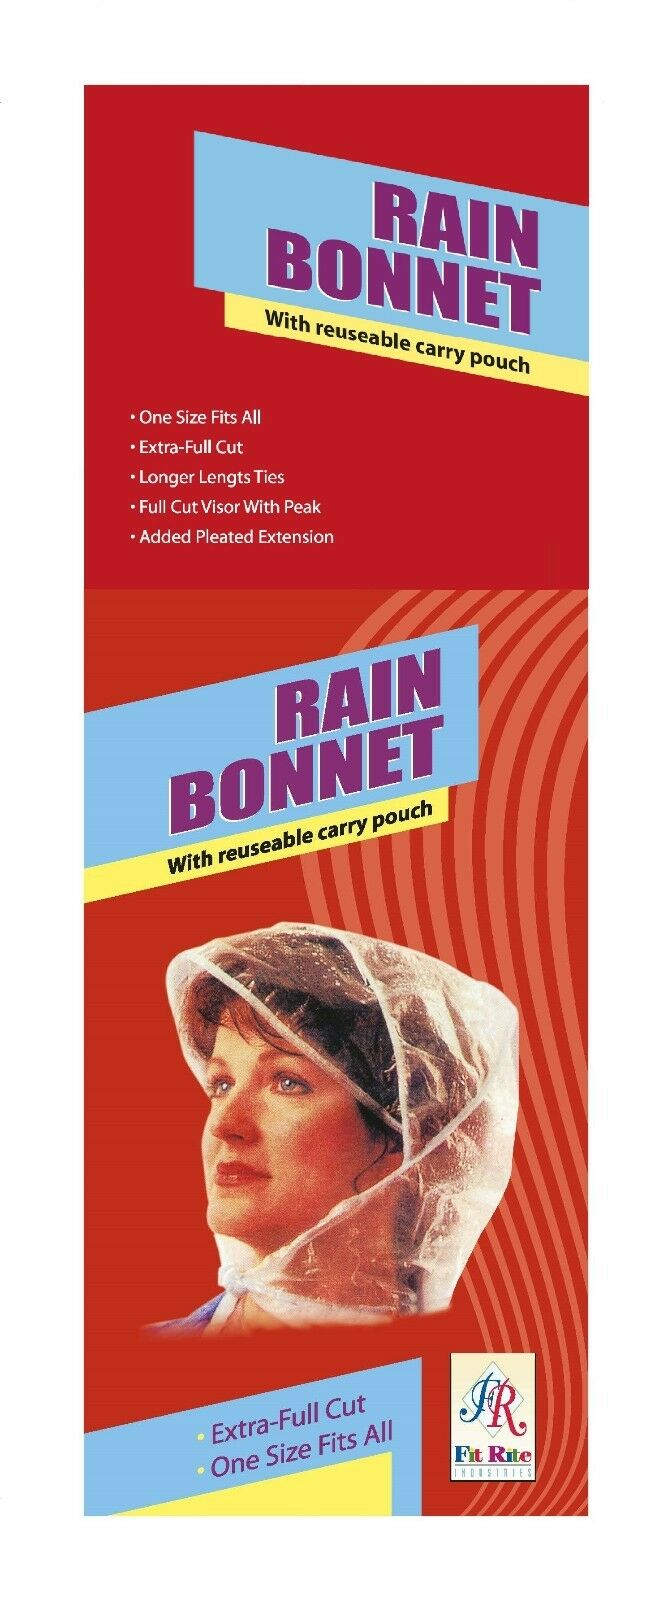 Black Fit Rite Womens Rain Bonnet with Full Cut Visor /& Netting 2 Pack One Size Fits All